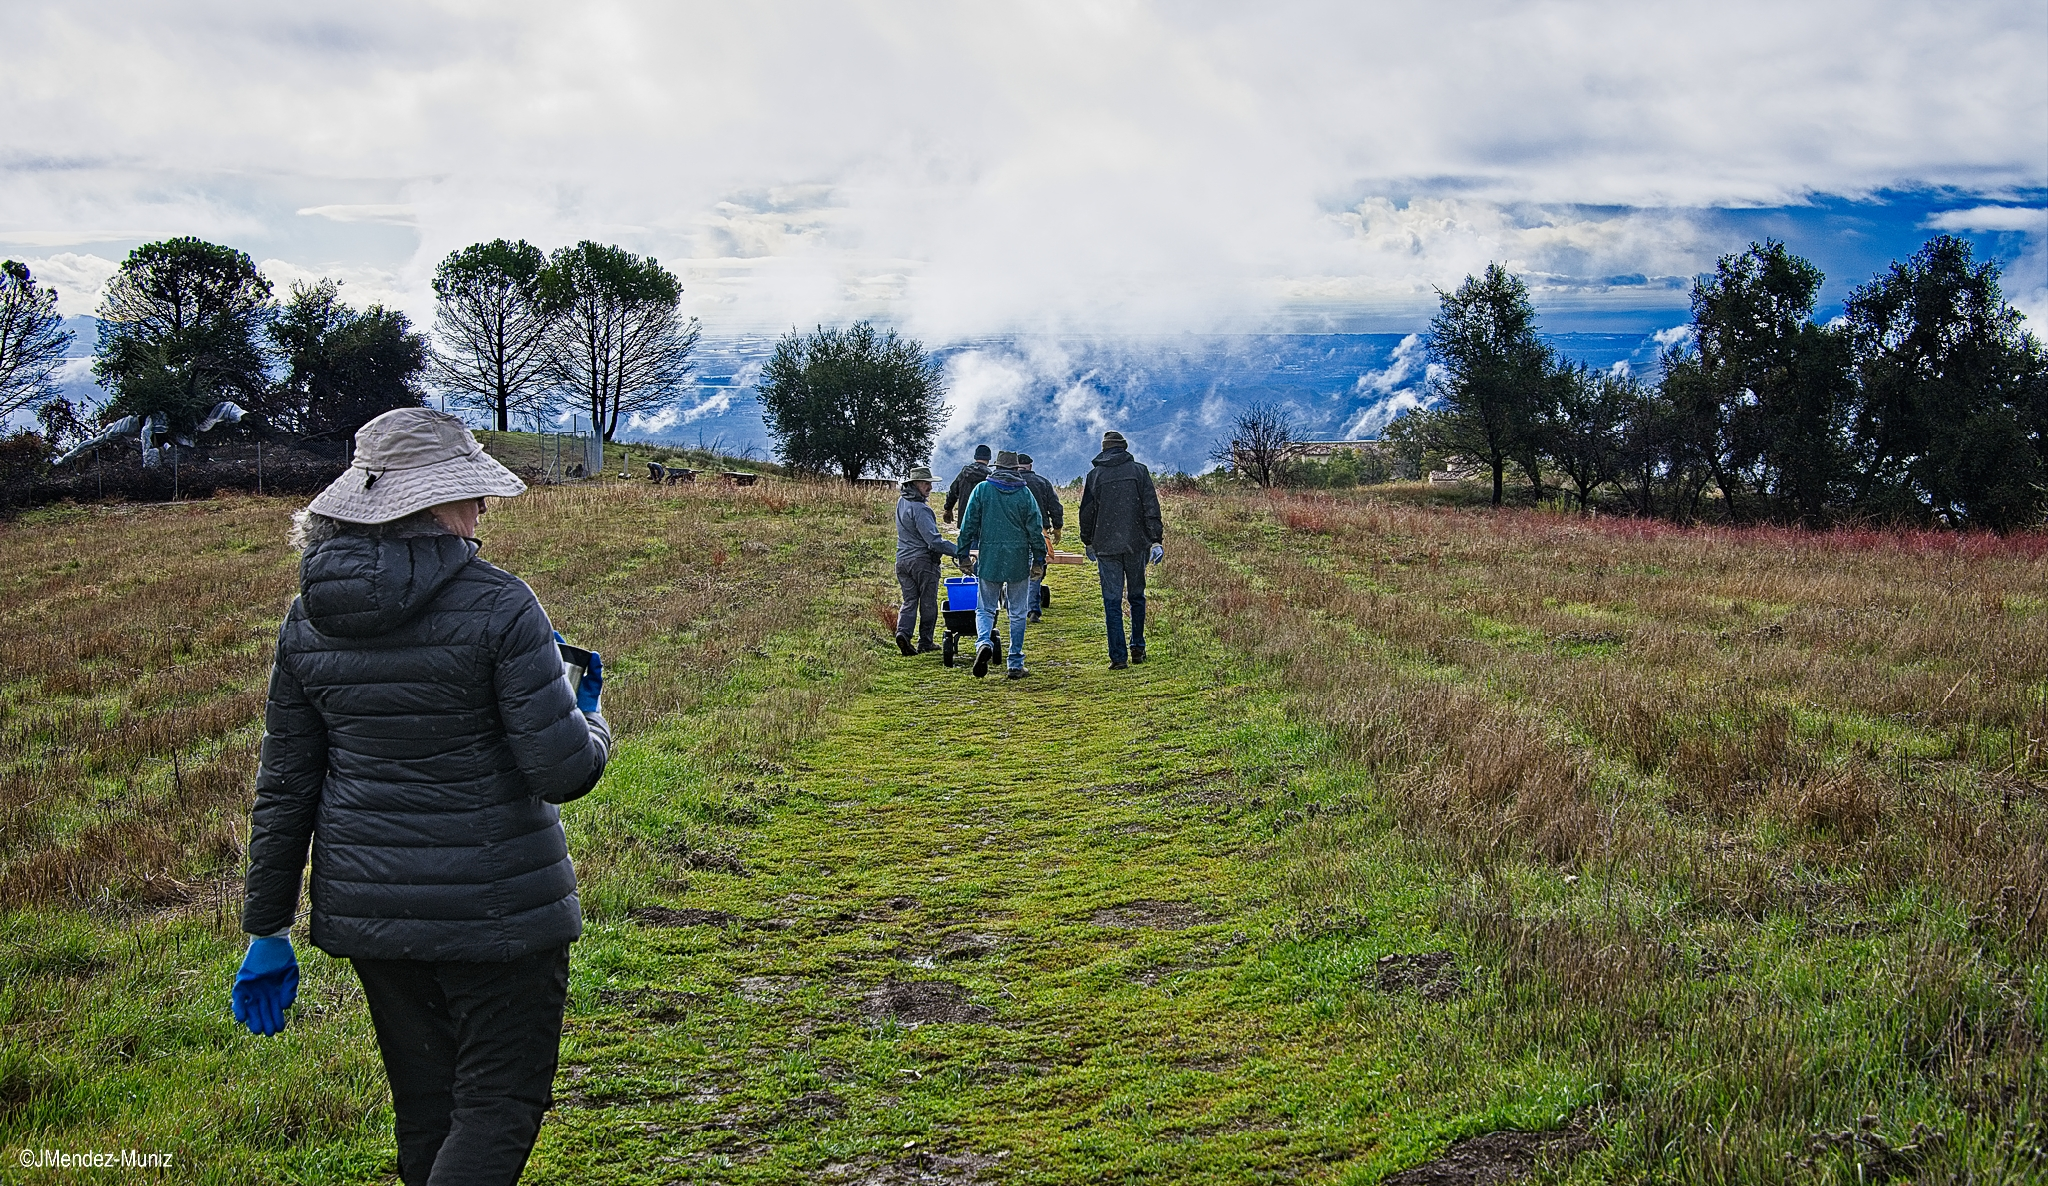 VOLUNTEERS WALKING ON BABA'S PATH to Baba's Tree (inside the seclusion fence) to harvest  dhuni  sticks at Meher Mount. The sun has just come out, and the skies were spectacular following the rainstorm. (Photo: Juan Mendez, January 12, 2019)